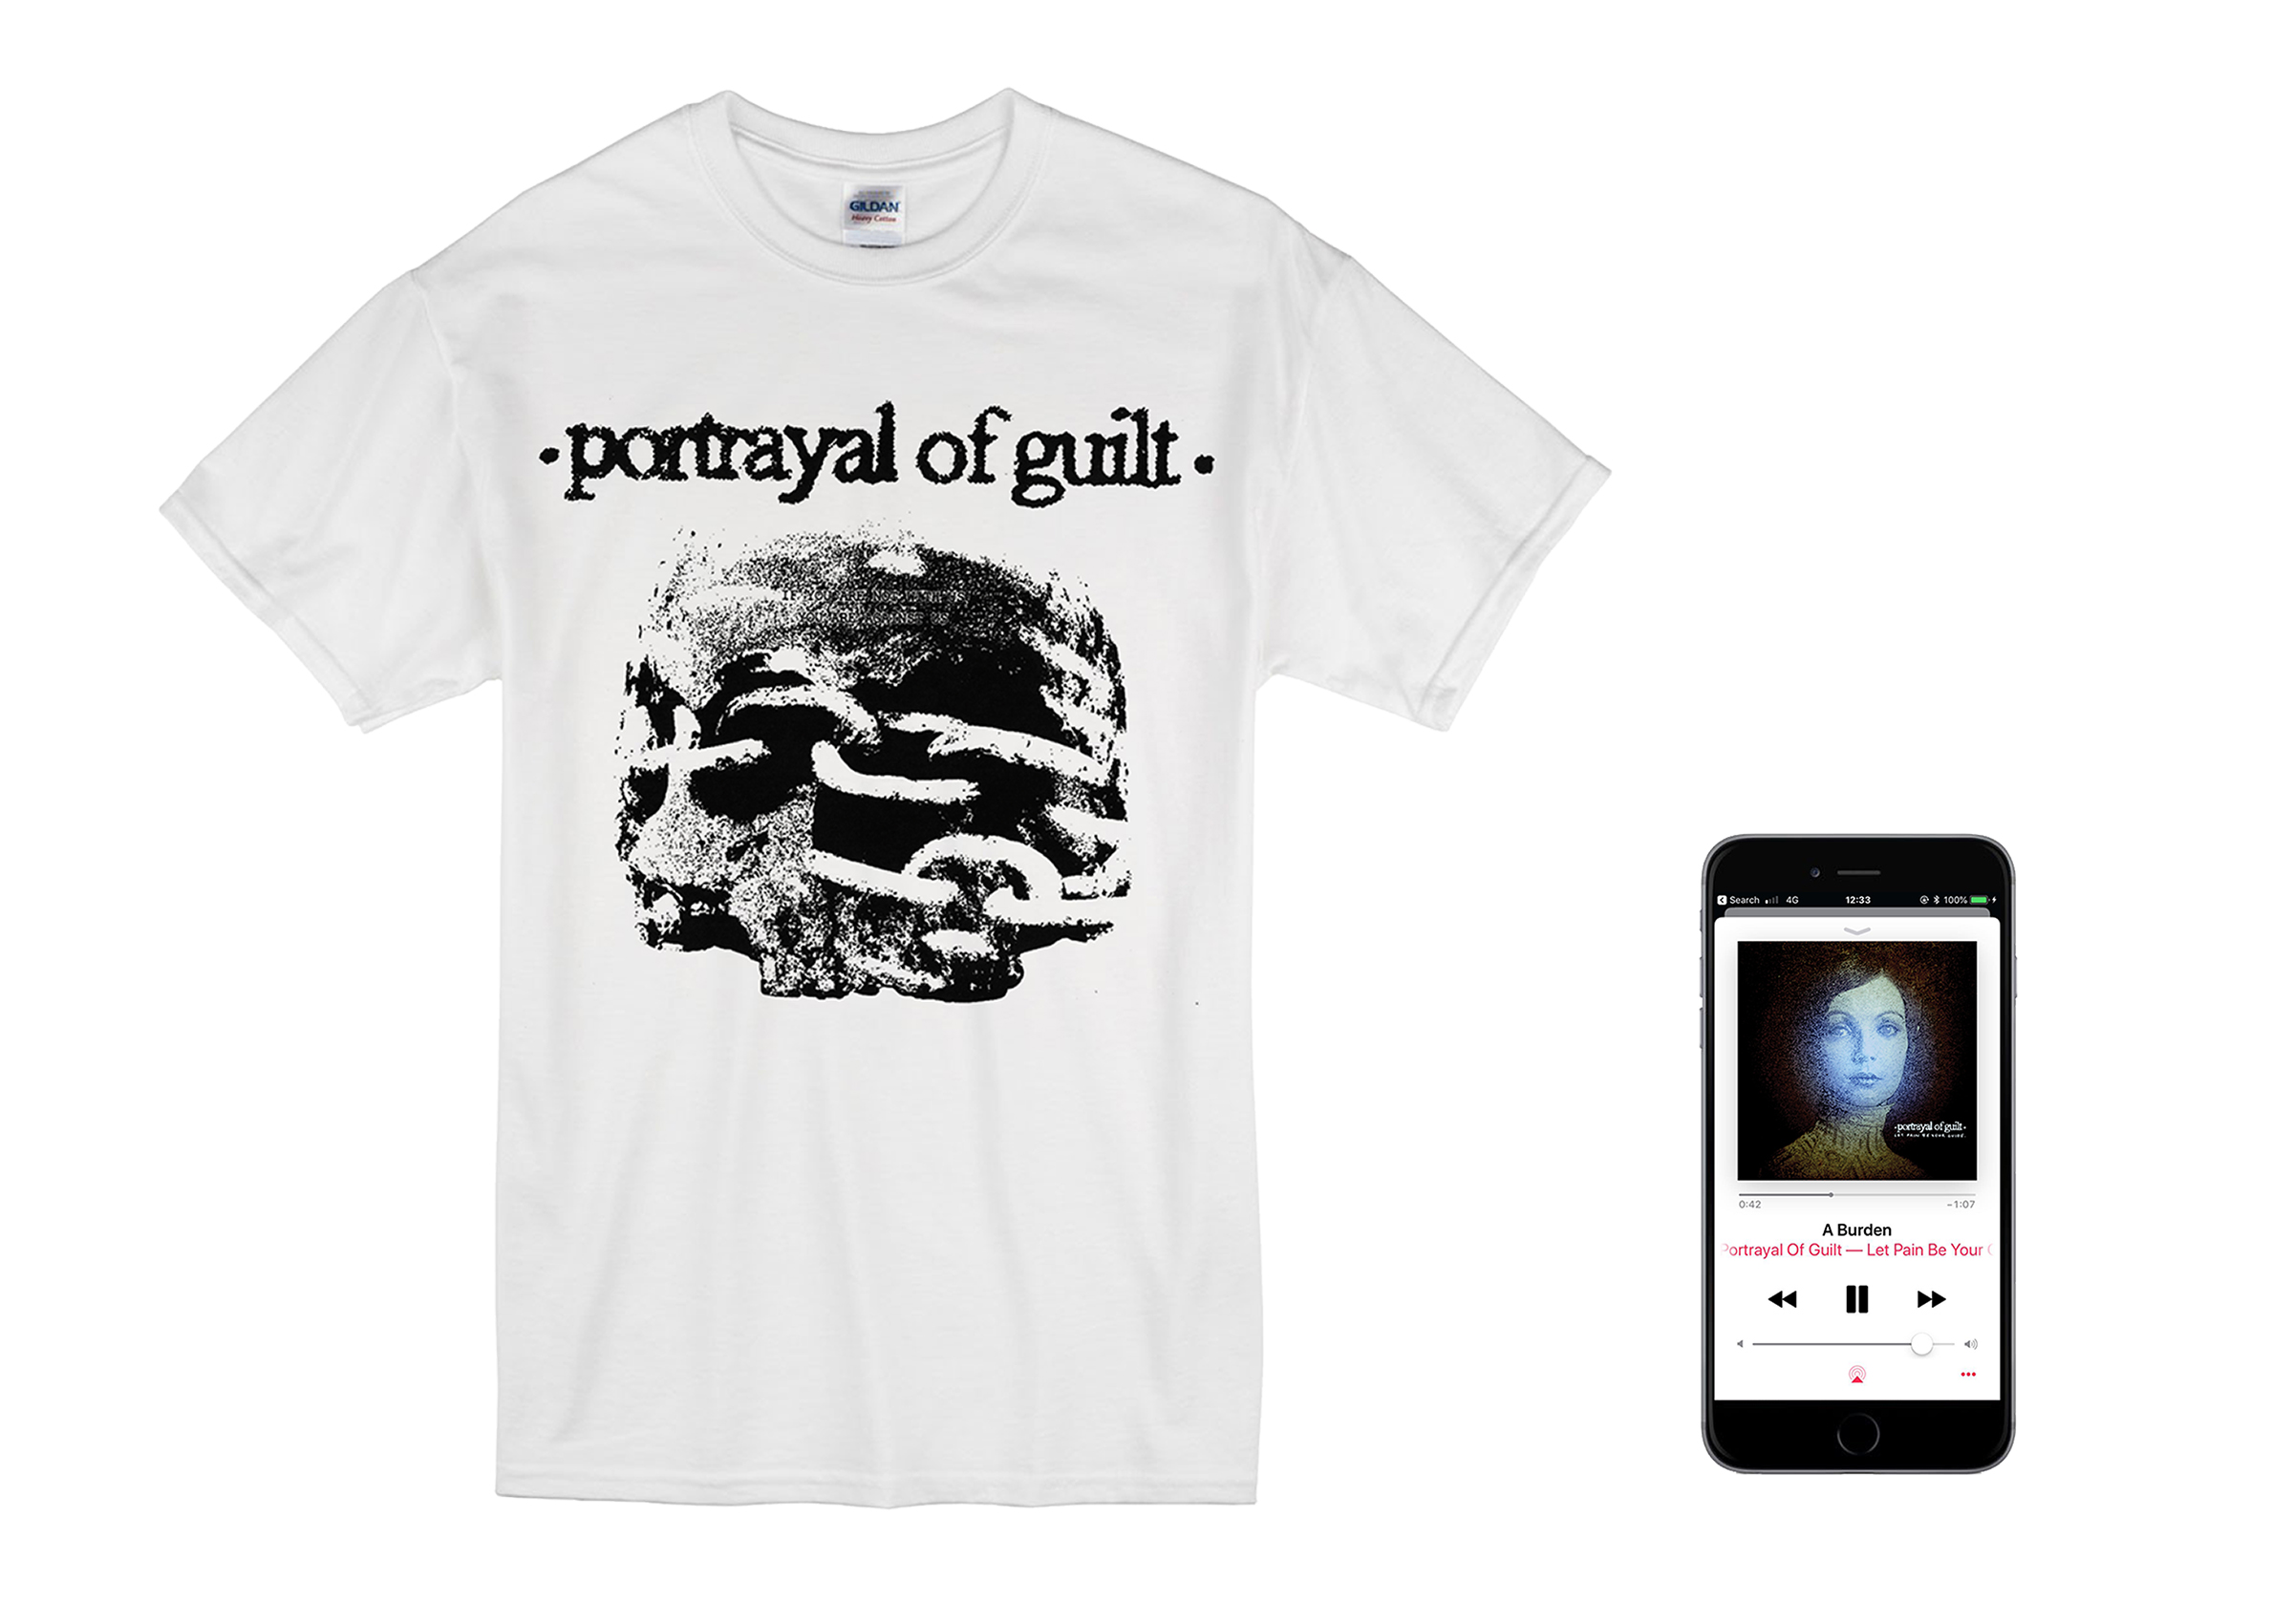 Portrayal of Guilt - 'Let Pain Be Your Guide' skull shirt + Digital Download